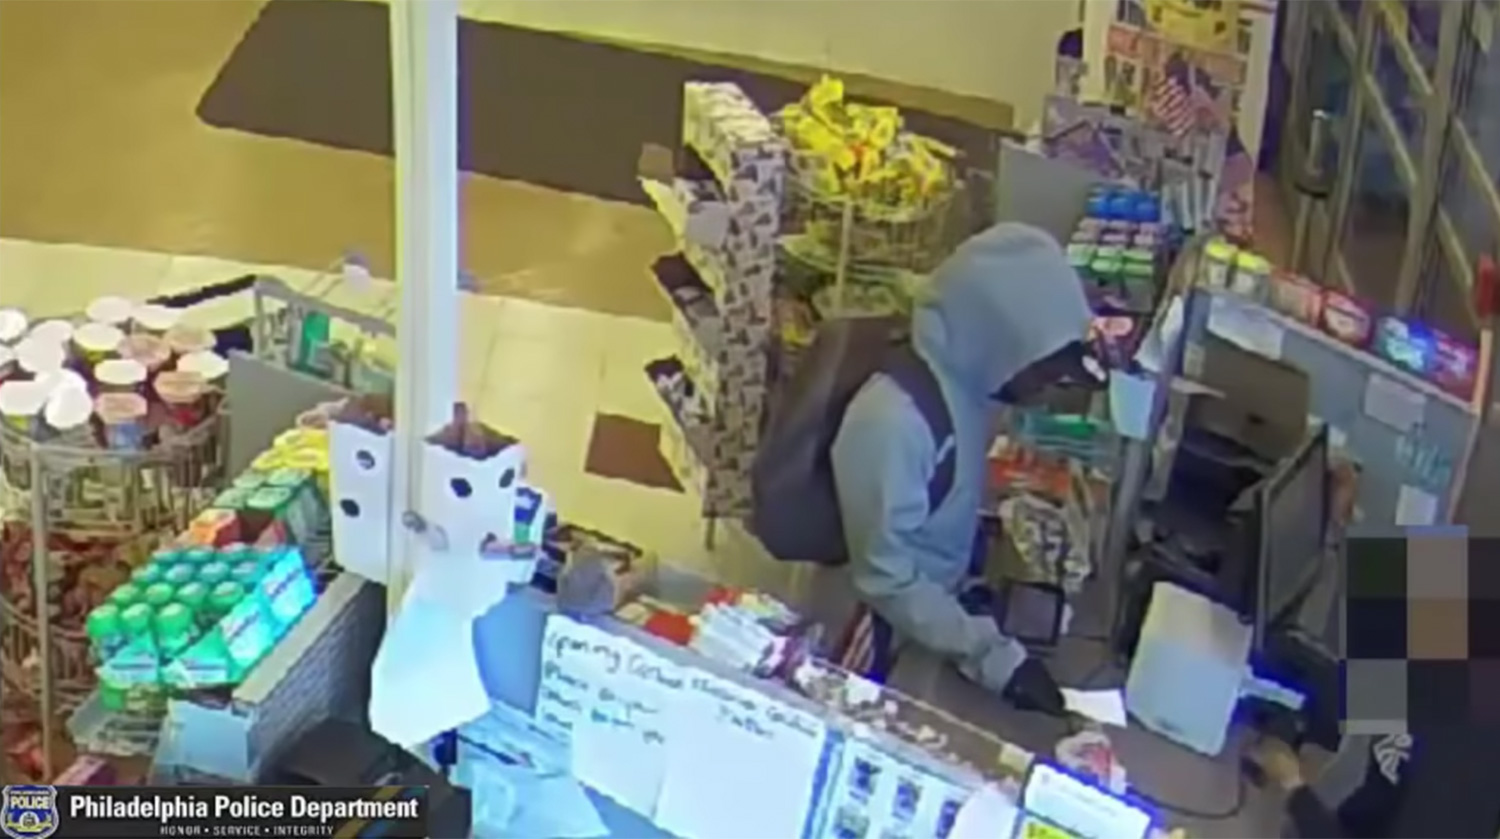 """On Friday January 3, 2020 at 11:57 AM, an unknown male entered the Rite Aid located at 7401 Ogontz Avenue initially acting as if to make a purchase. The suspect then produced a demand note, handing it to the employee which read in part, """"Give me all the money. I'm sorry, I have a sick child."""